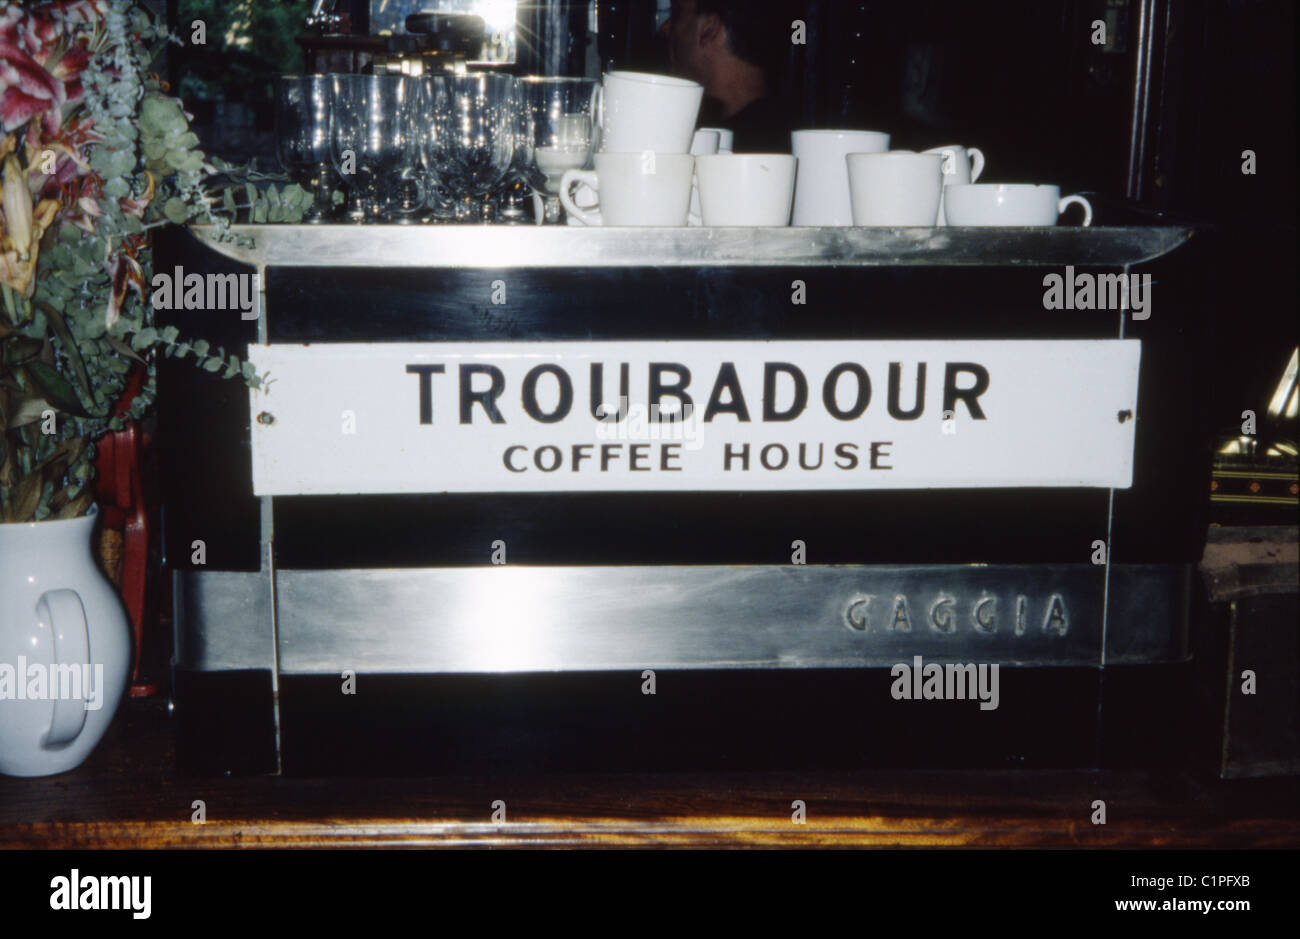 Expresso machine of the Troubadour, Old Brompton Rd, a famous 1950s coffee house in Earl's Court, London. - Stock Image